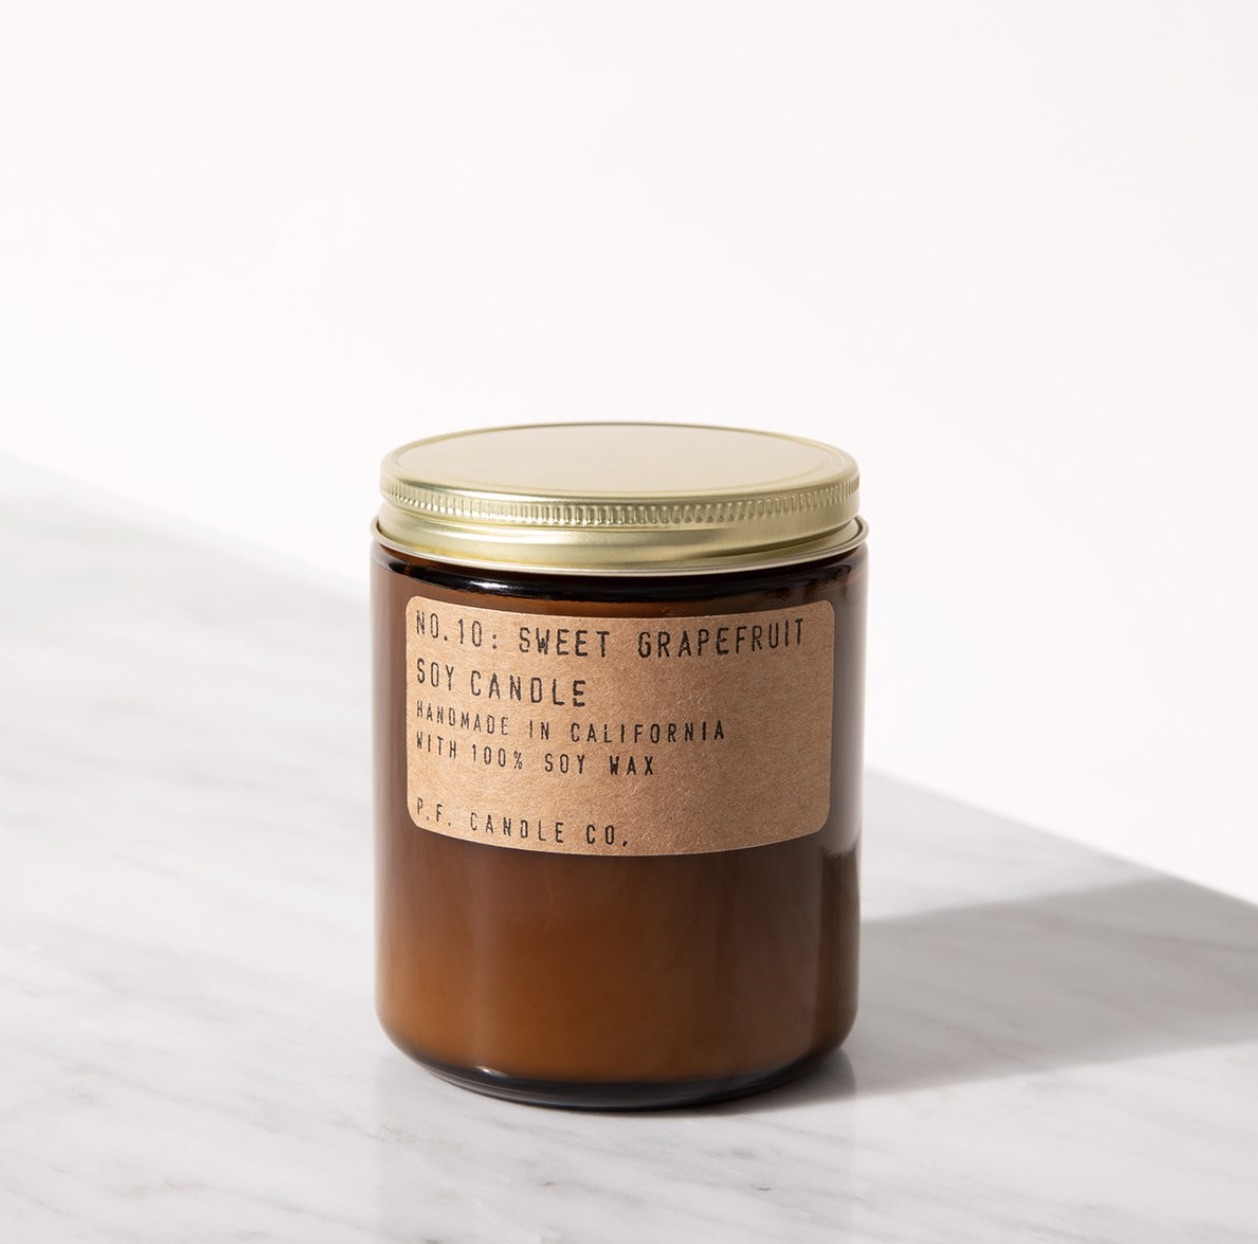 Sweet Grapefruit Candle, P.F Candle Co